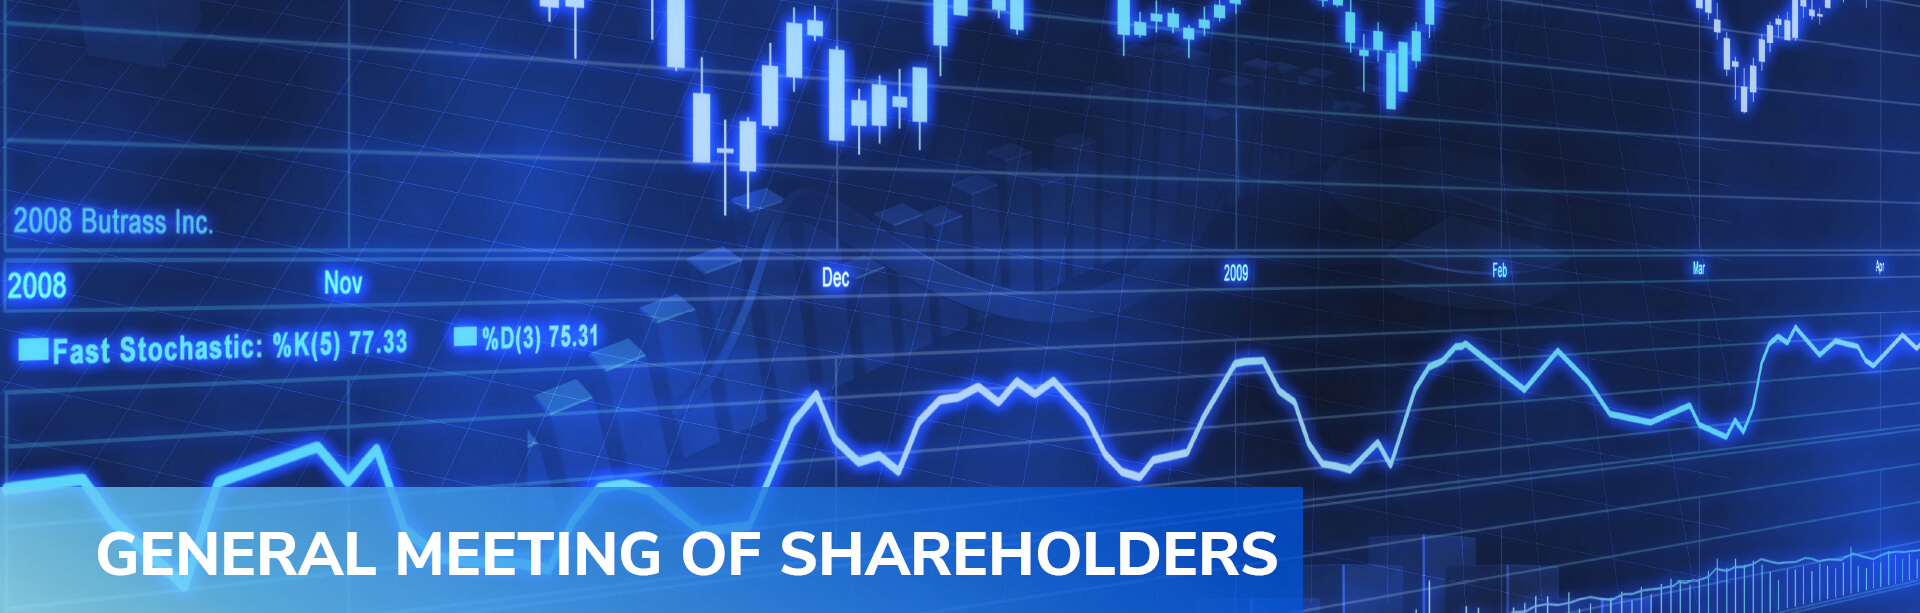 GENERAL MEETING OF SHAREHOLDERS